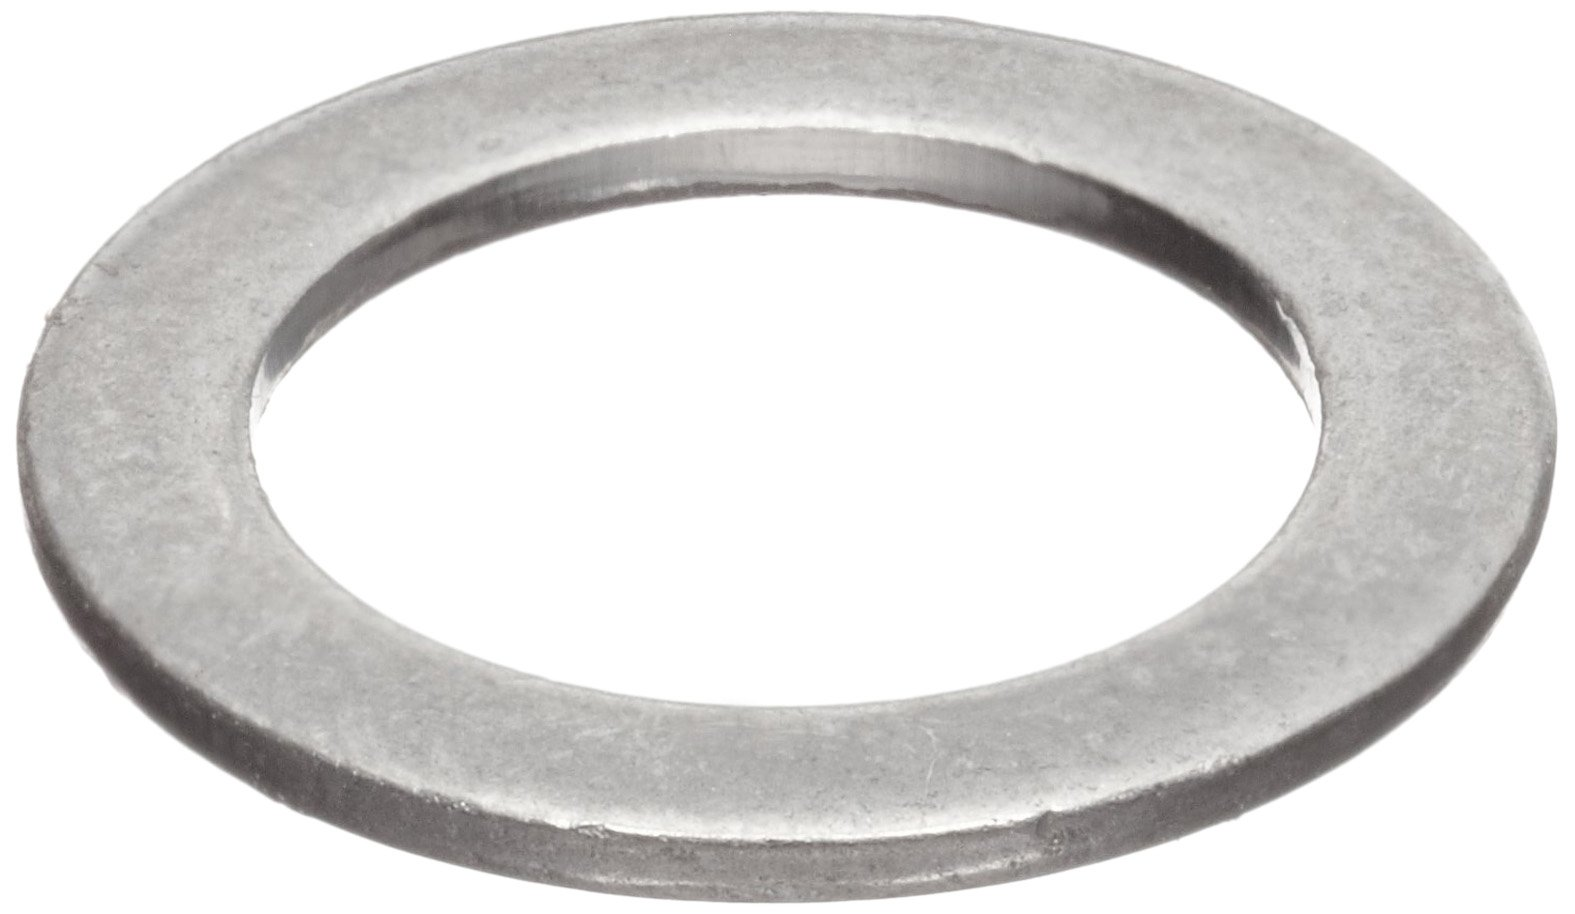 """Shim Flat Washer 0.125-0.130/"""" ID New 18-8 Stainless Steel 1//8/"""" Bolt Size .."""